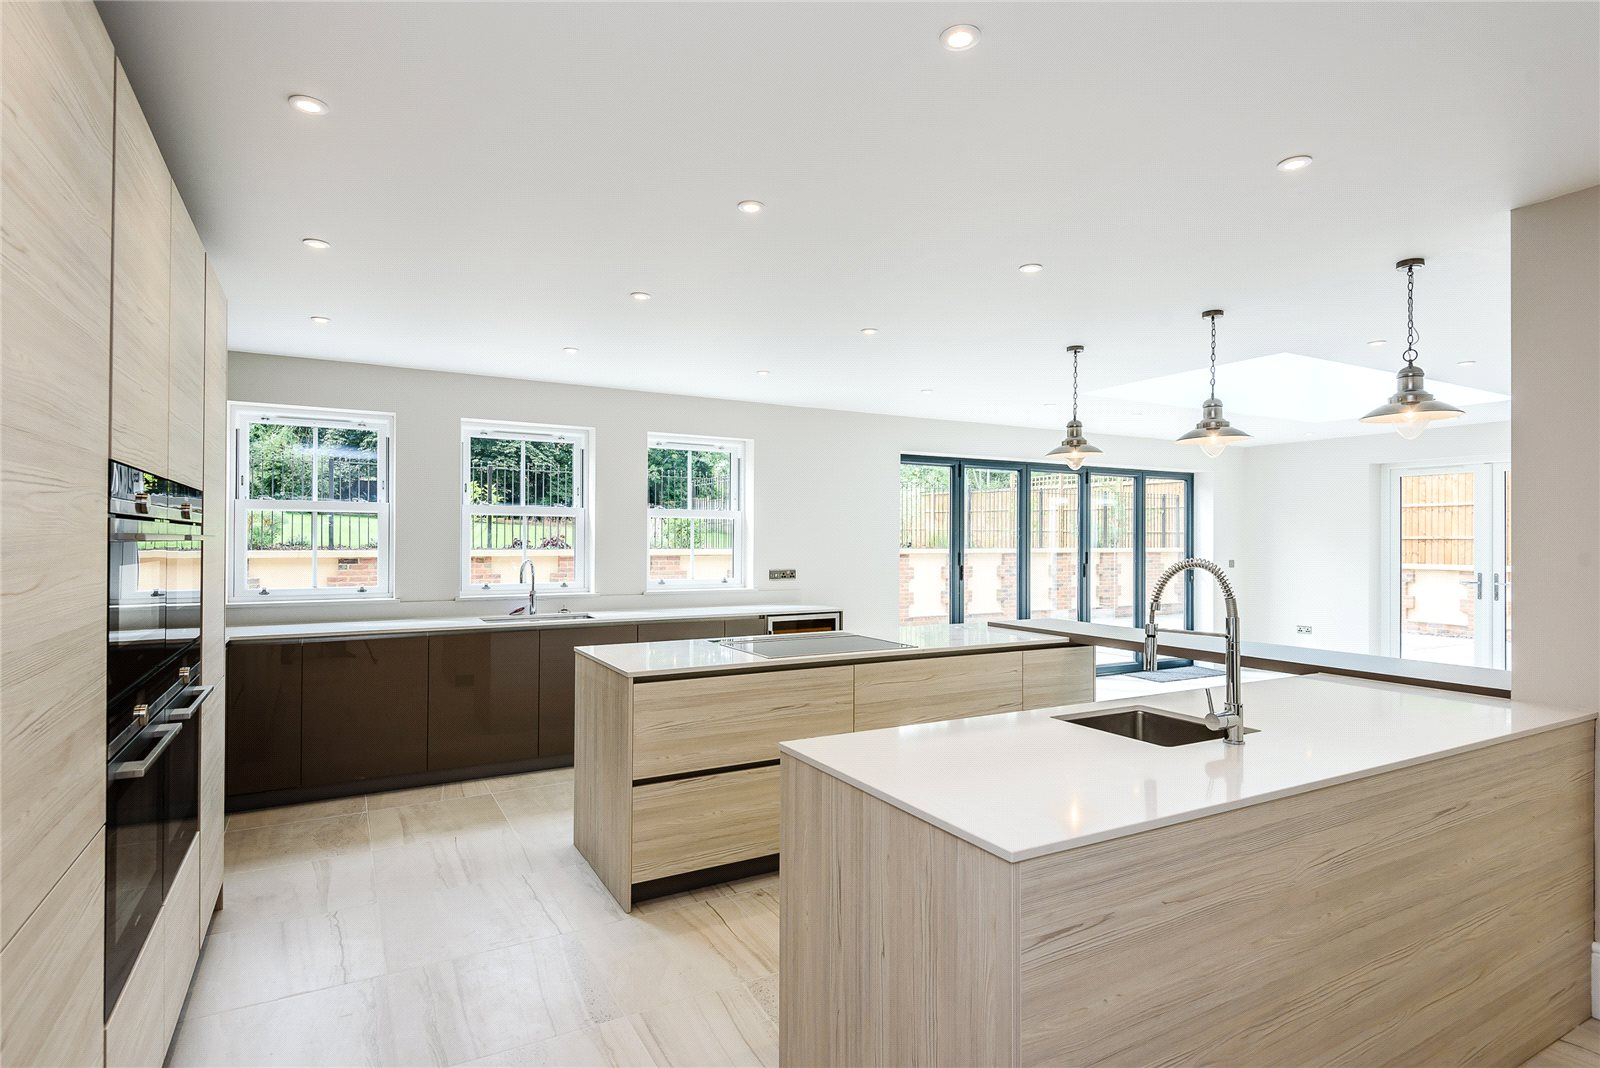 Additional photo for property listing at Tilehurst Lane, Binfield, Berkshire, RG42 Binfield, Αγγλια